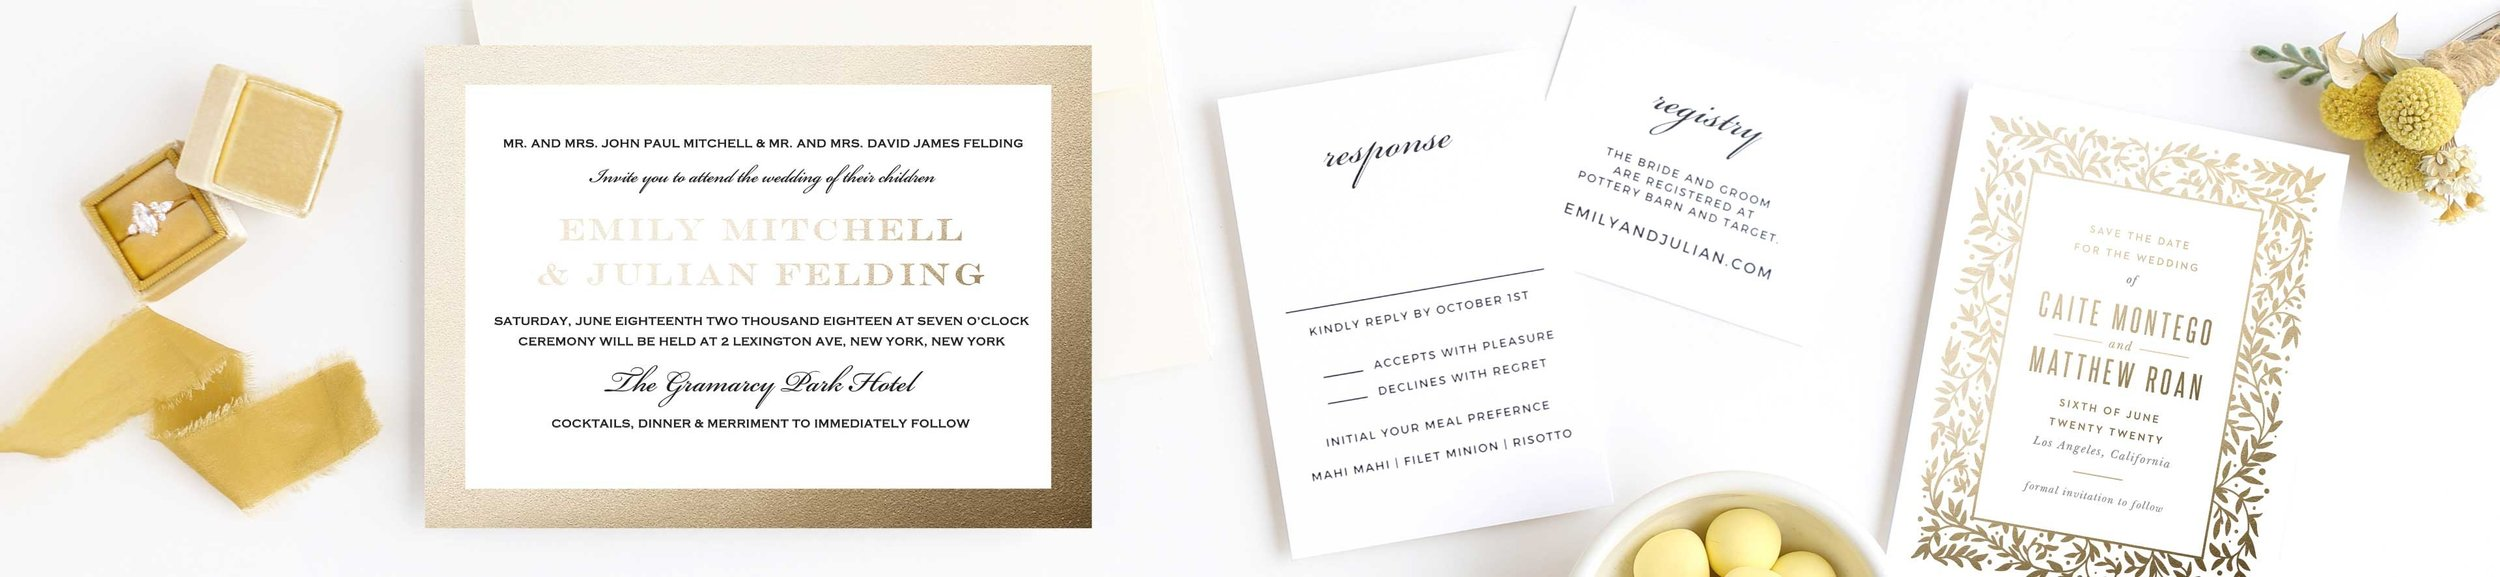 FOIL INVITATIONS - FLAT FOIL OR RAISED FOIL IN ANY COLOR